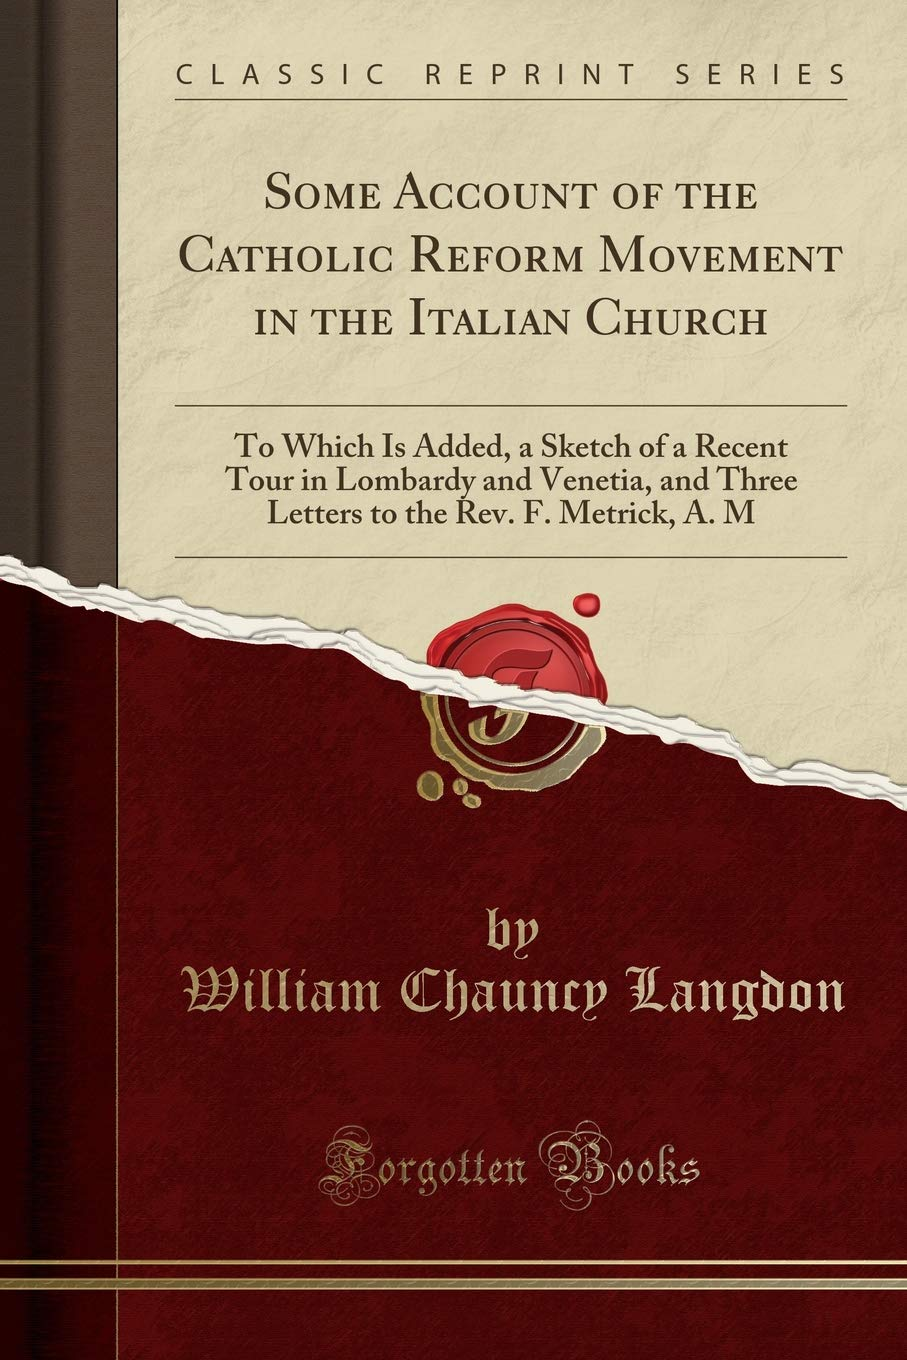 Read Online Some Account of the Catholic Reform Movement in the Italian Church: To Which Is Added, a Sketch of a Recent Tour in Lombardy and Venetia, and Three ... the Rev. F. Metrick, A. M (Classic Reprint) pdf